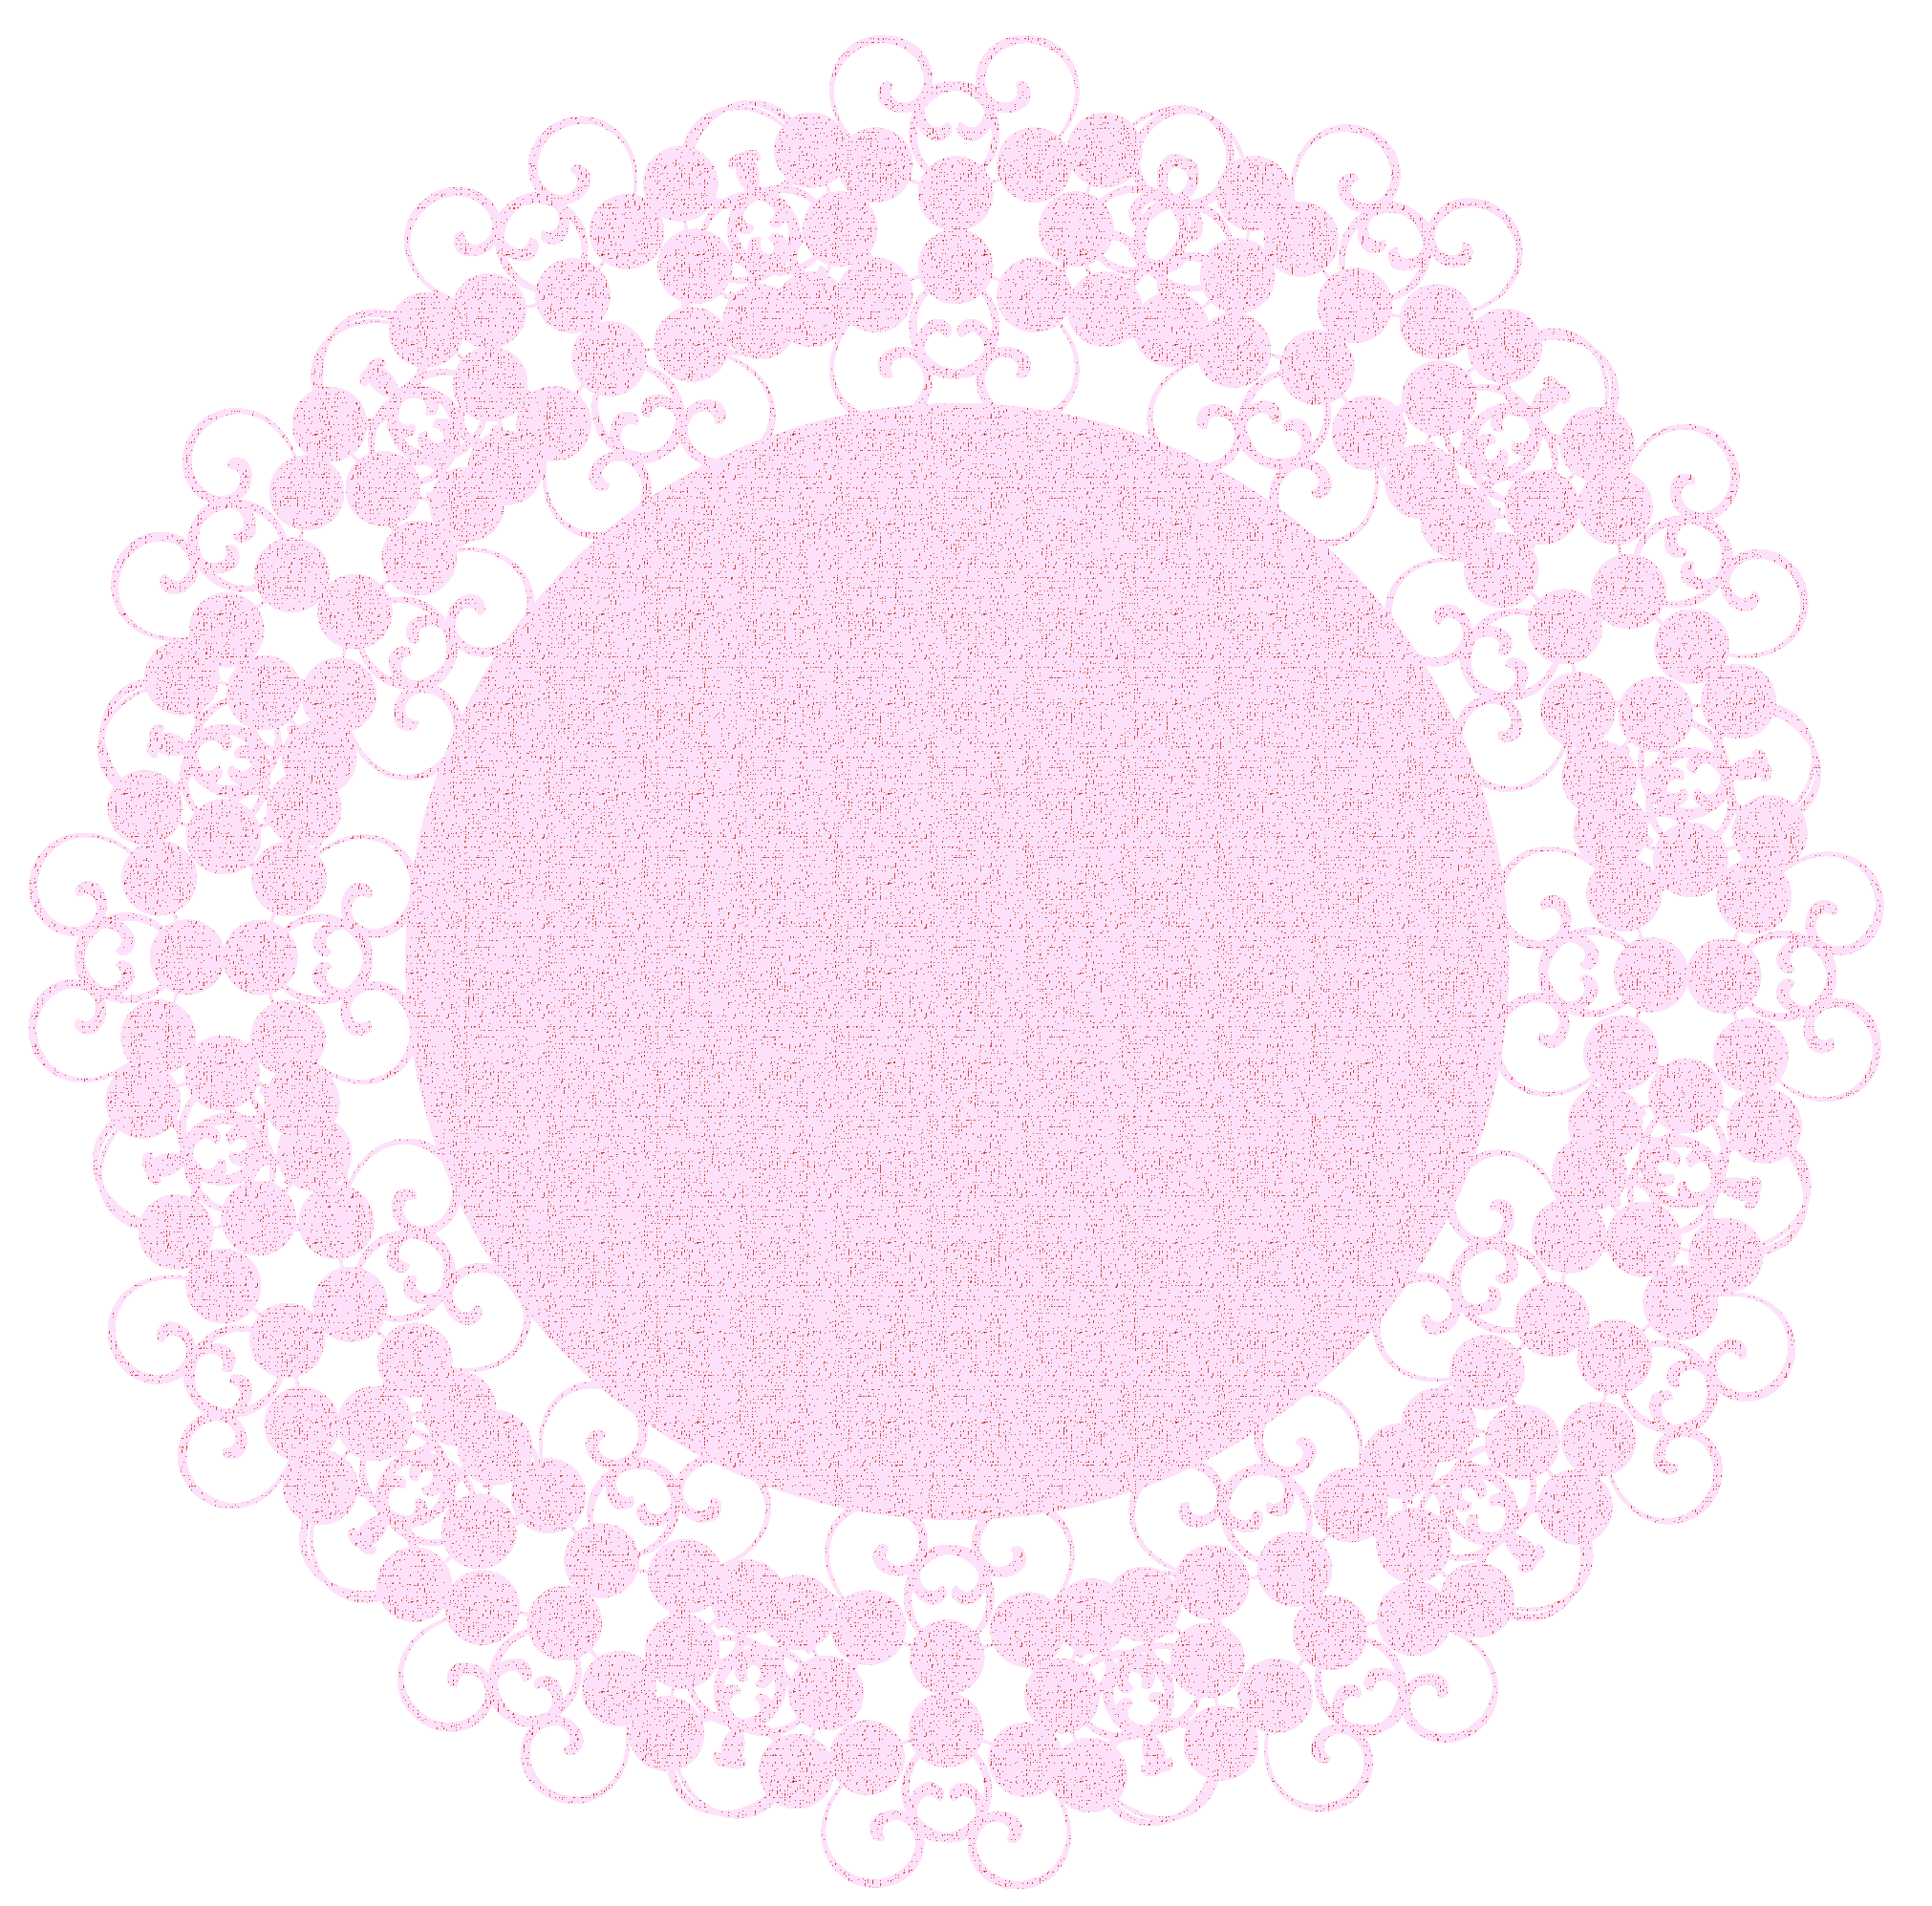 Purple clipart doily. Pin by angelica mora